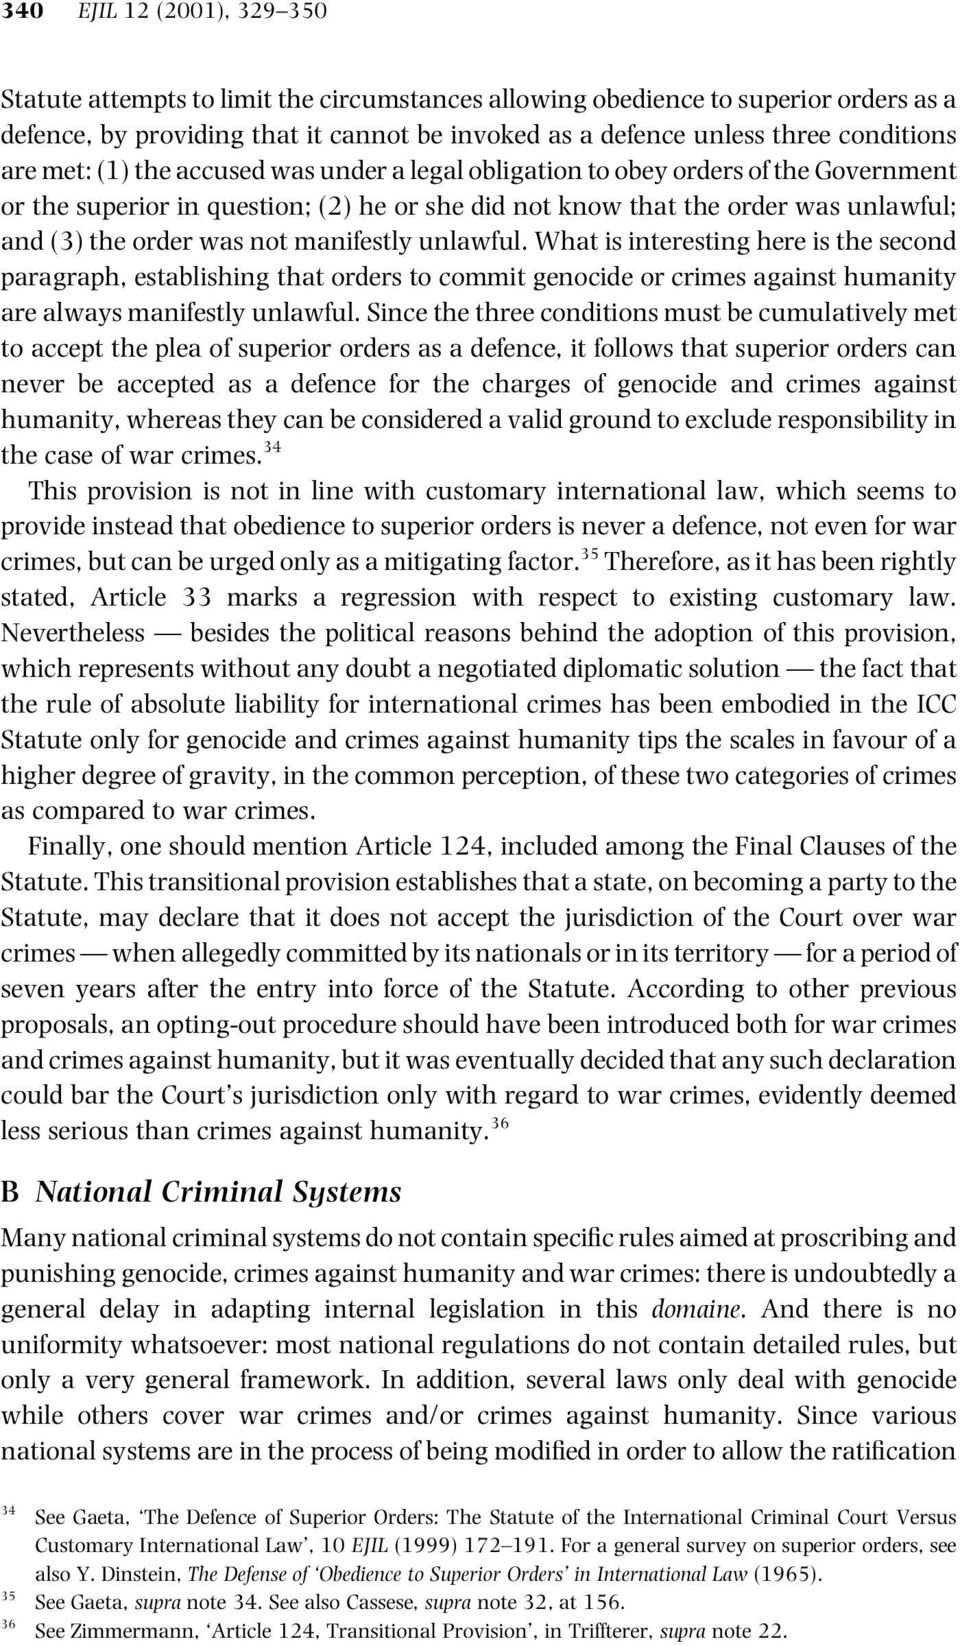 manifestly unlawful. What is interesting here is the second paragraph, establishing that orders to commit genocide or crimes against humanity are always manifestly unlawful.